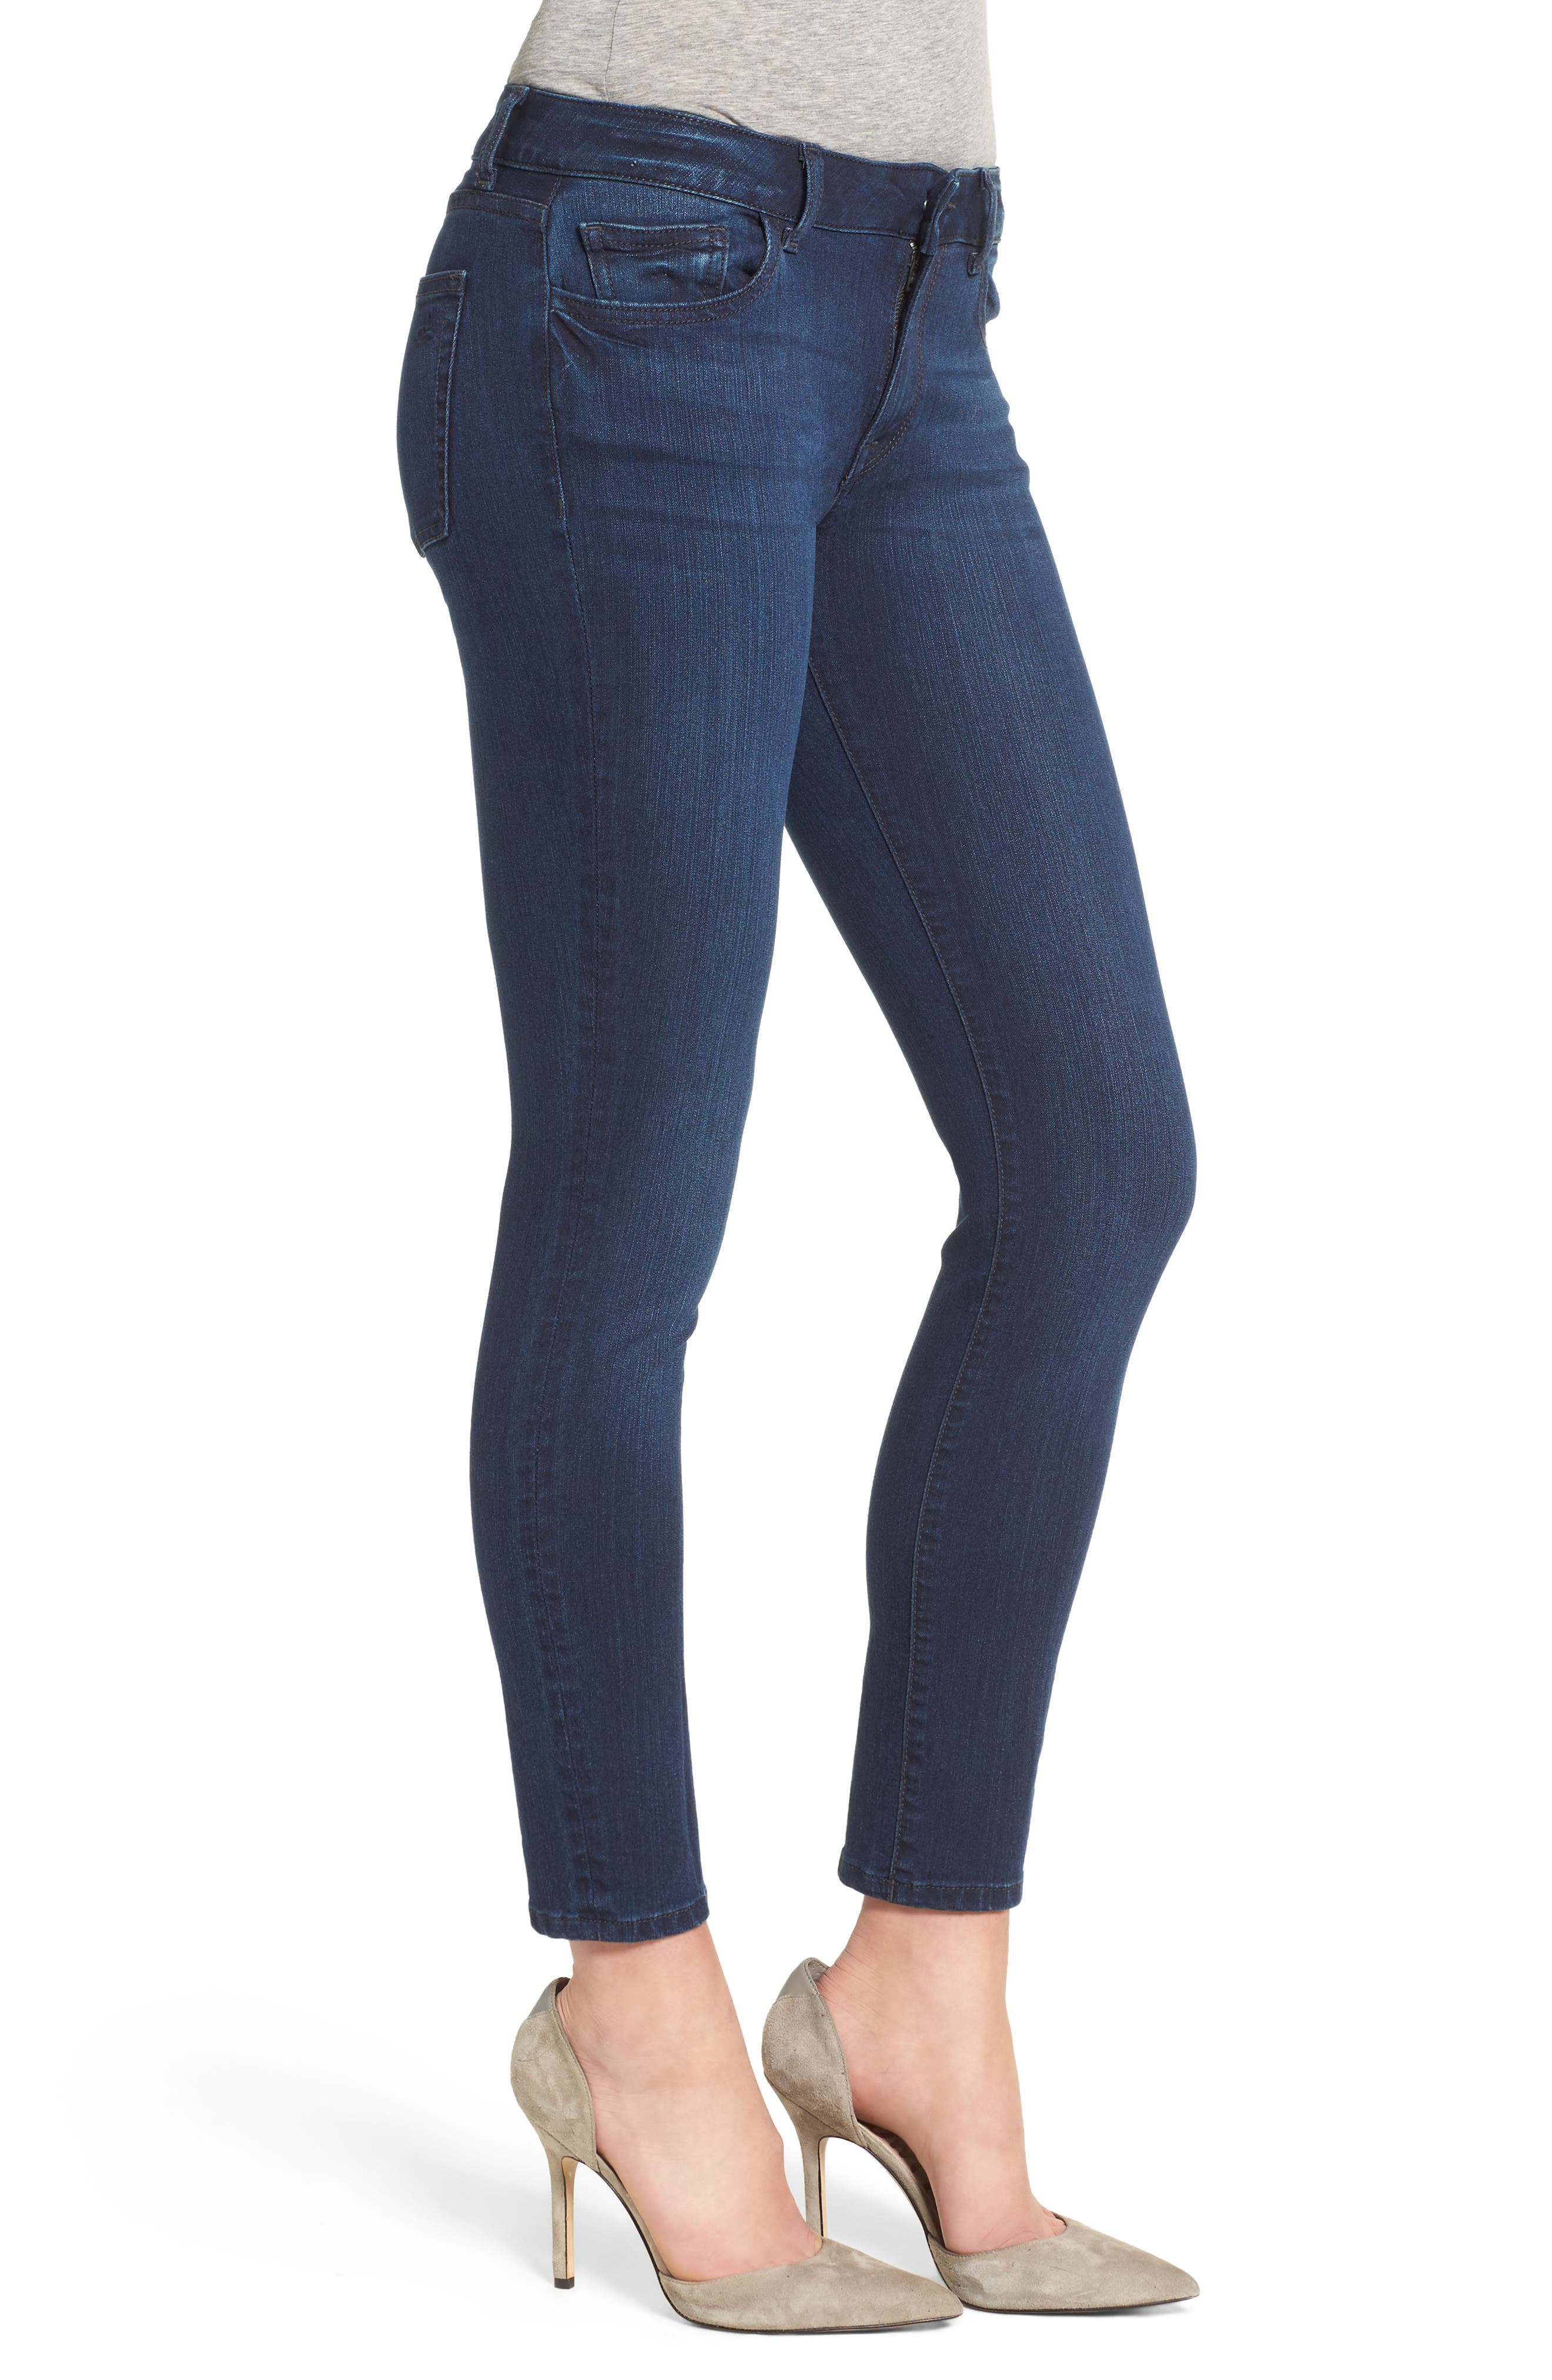 Margaux Instasculpt Ankle Skinny Jeans,                             Alternate thumbnail 3, color,                             405